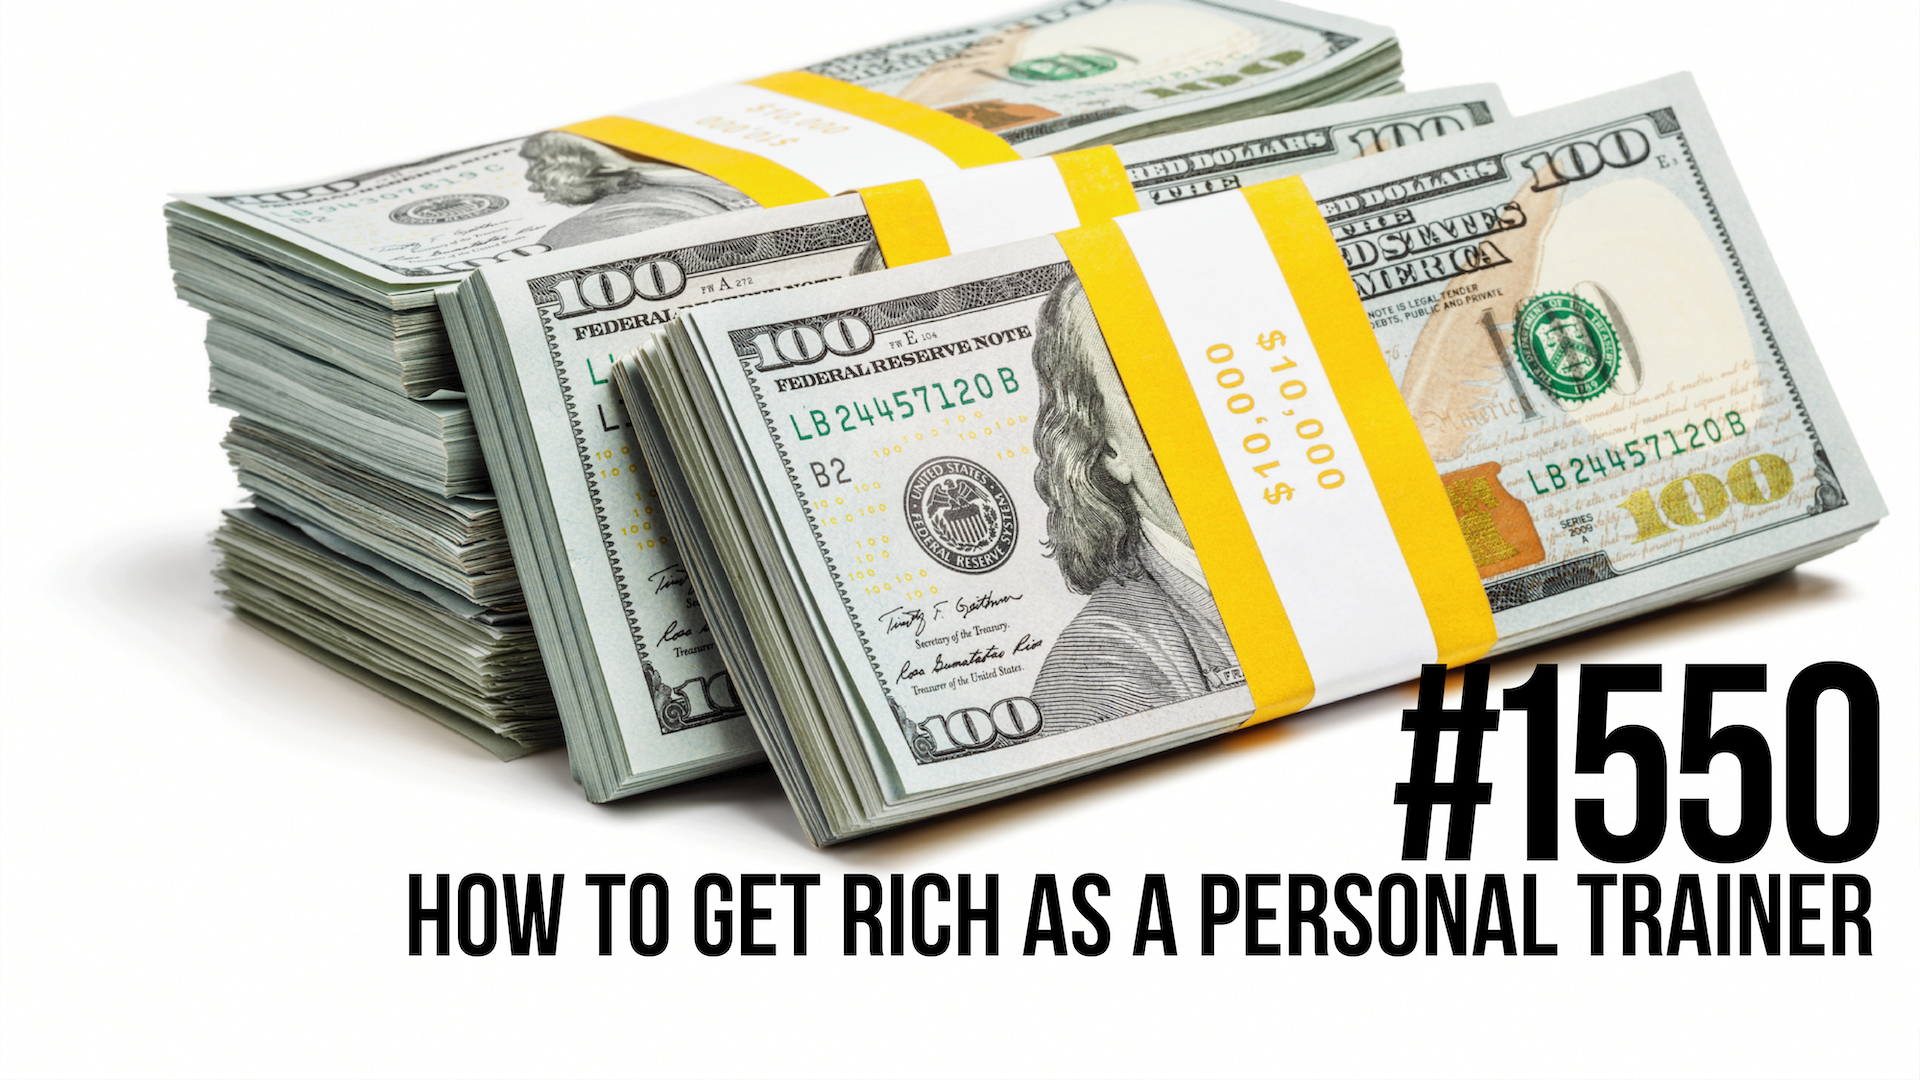 1550: How to Get Rich as a Personal Trainer